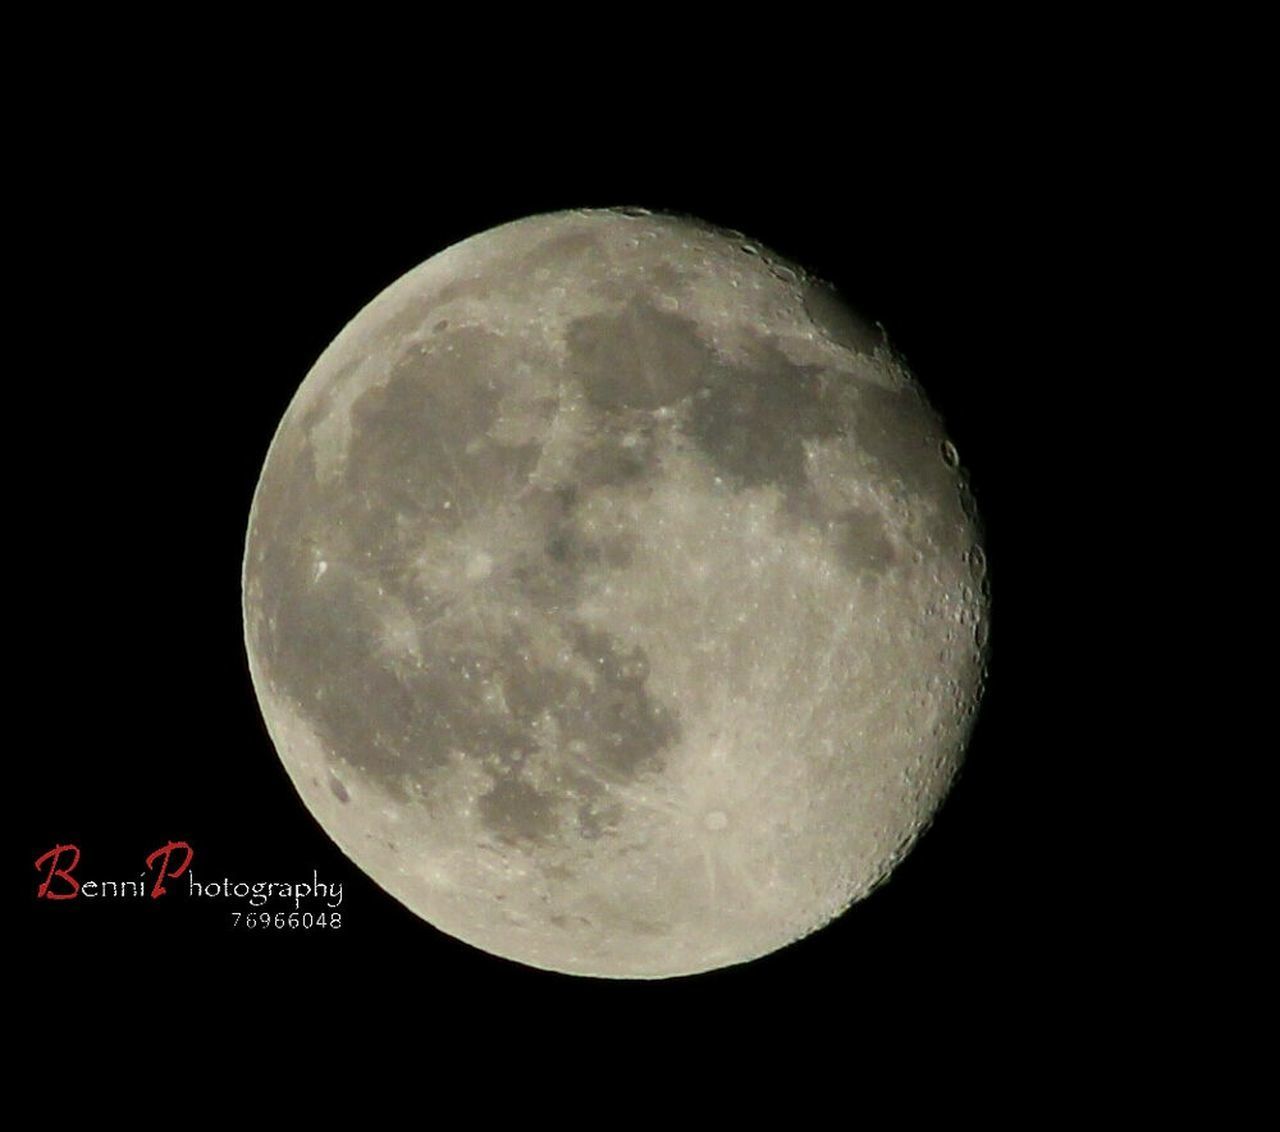 night, moon, moon surface, planetary moon, full moon, astronomy, circle, beauty in nature, majestic, space exploration, discovery, nature, scenics, dark, tranquility, low angle view, space, moonlight, half moon, no people, outdoors, clear sky, close-up, sky